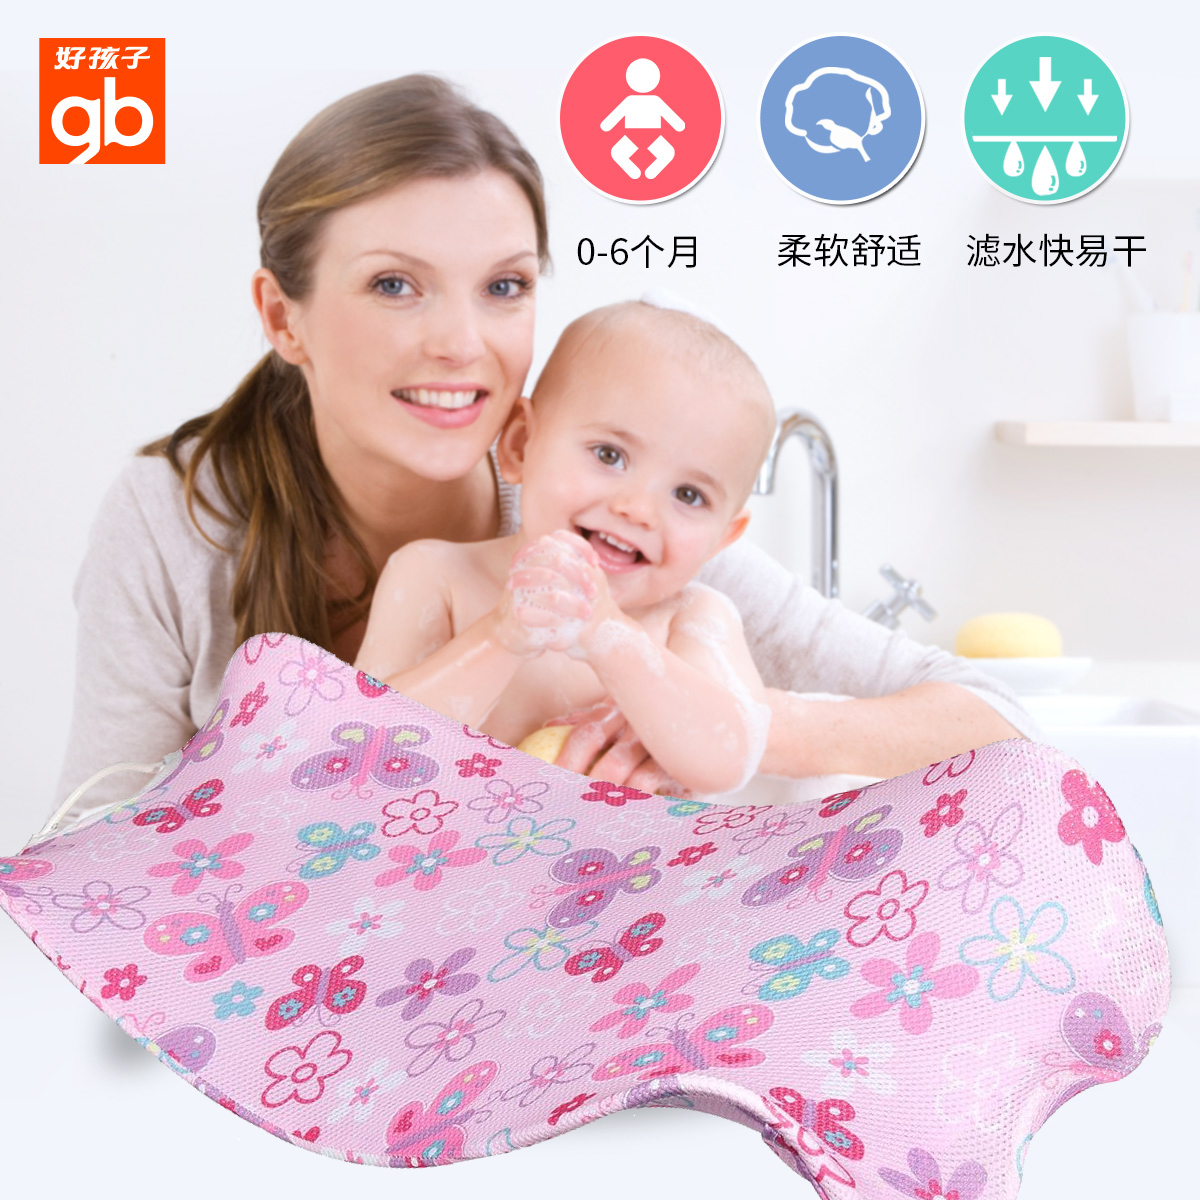 China Digital Baby Bath, China Digital Baby Bath Shopping Guide at ...